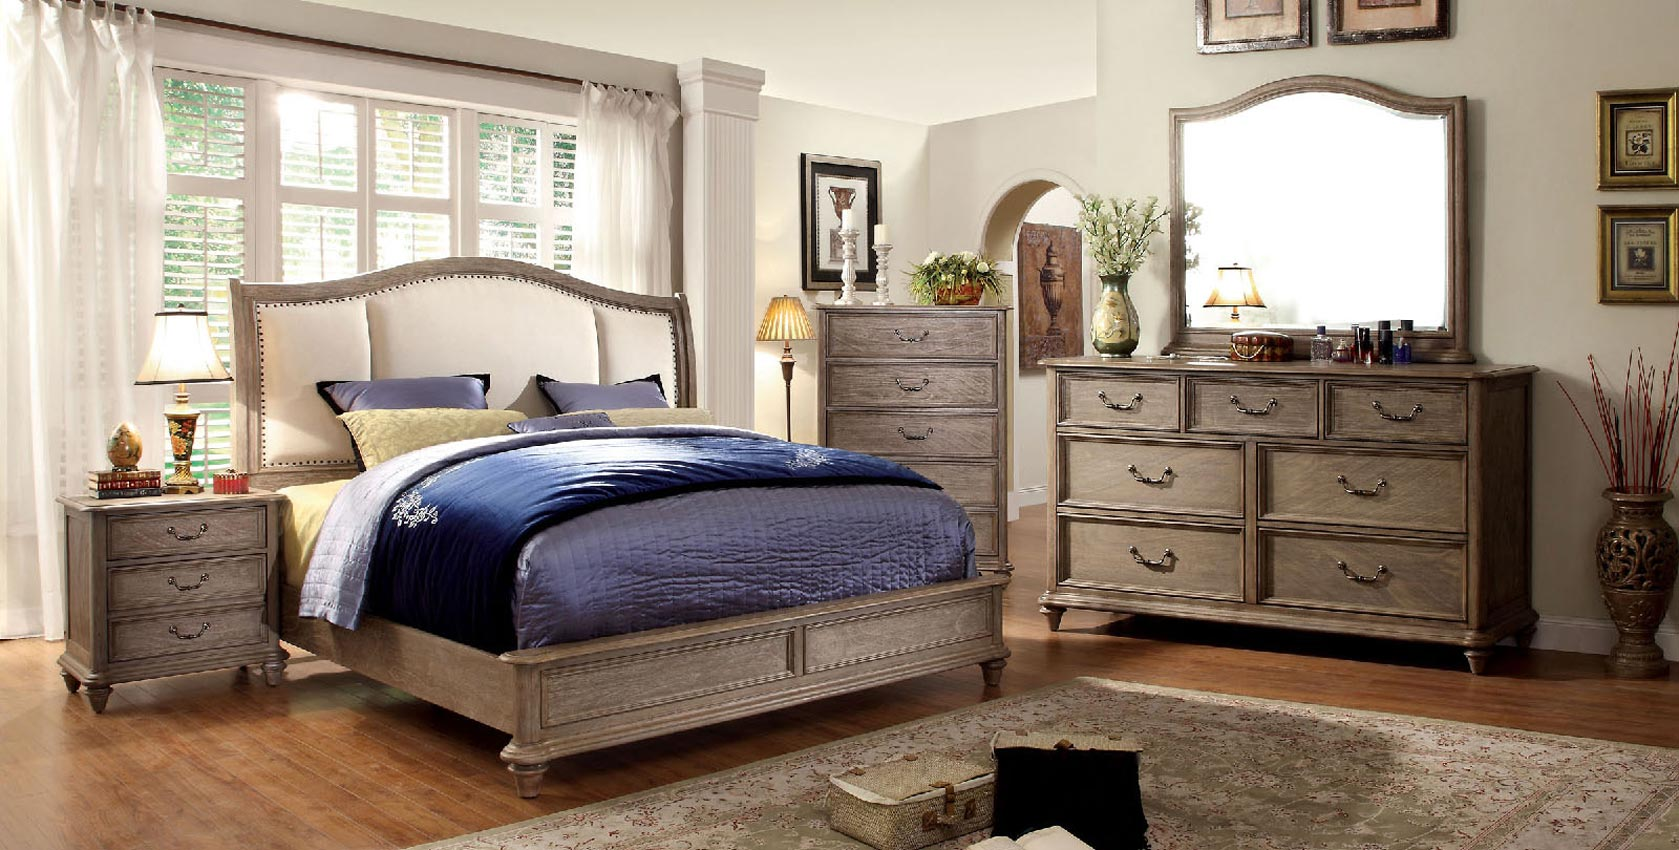 Belgrade Bedframe- Drawer or Fabric option